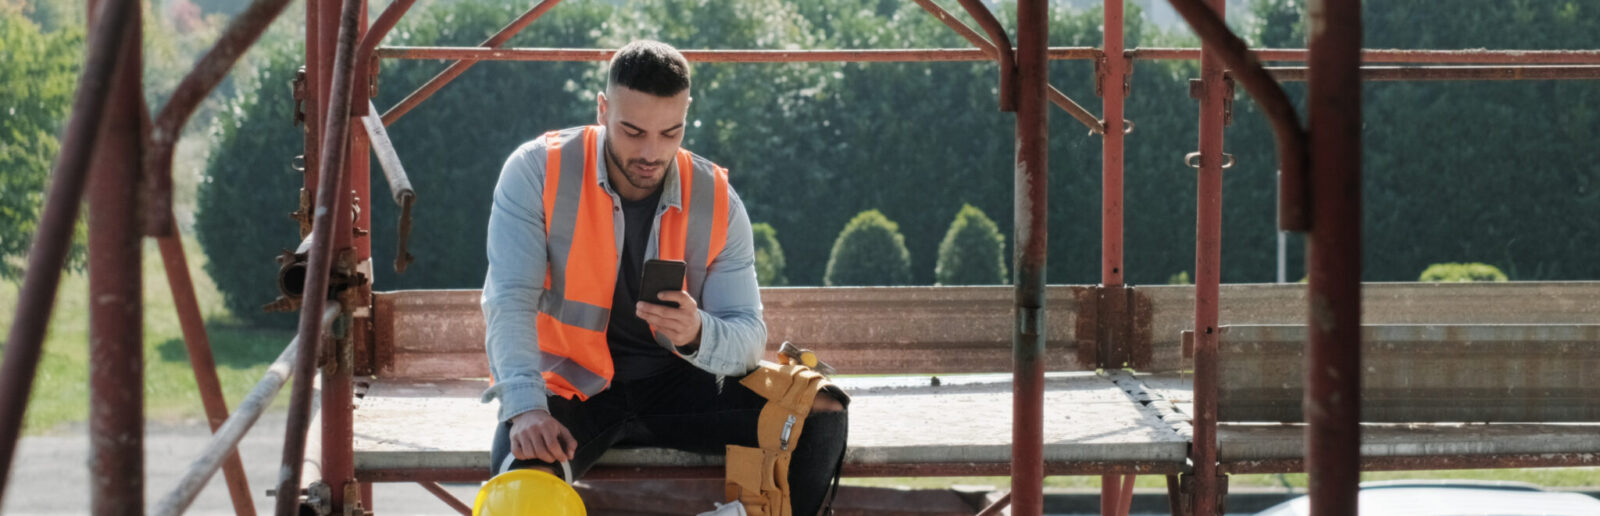 Man working in construction site smiling and using smartphone